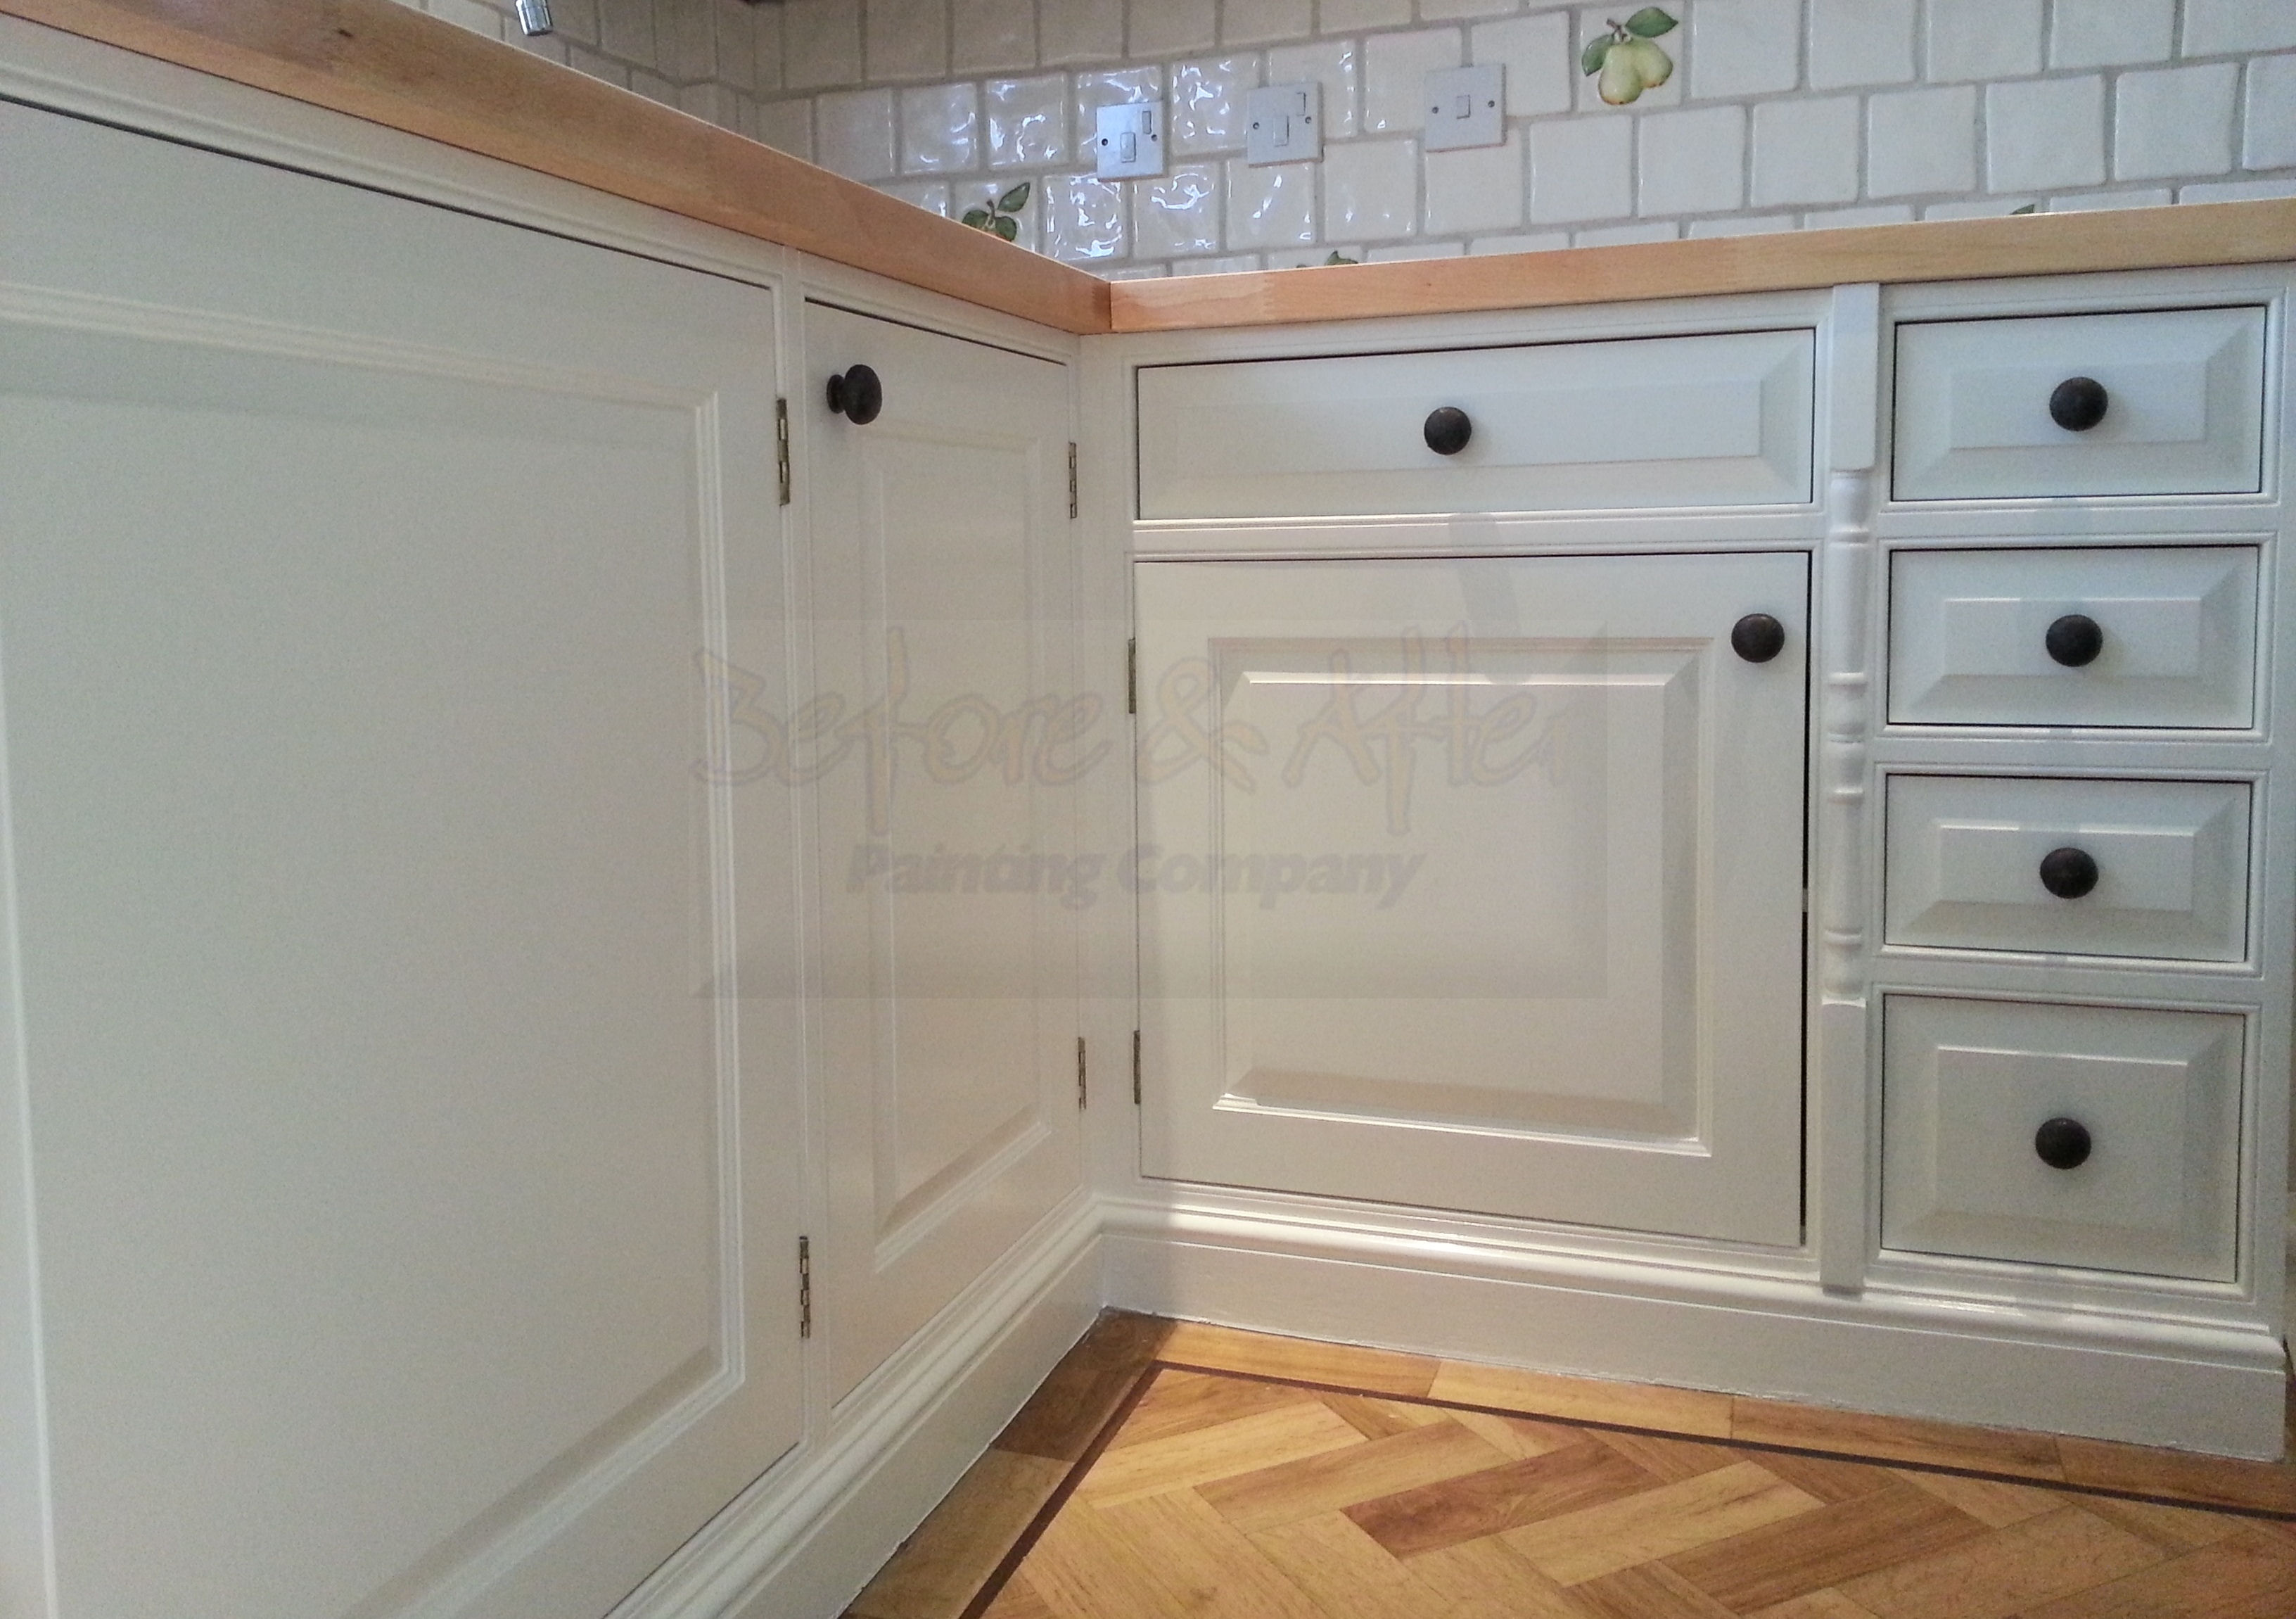 Hand painted kitchen in Sidcup Kent.